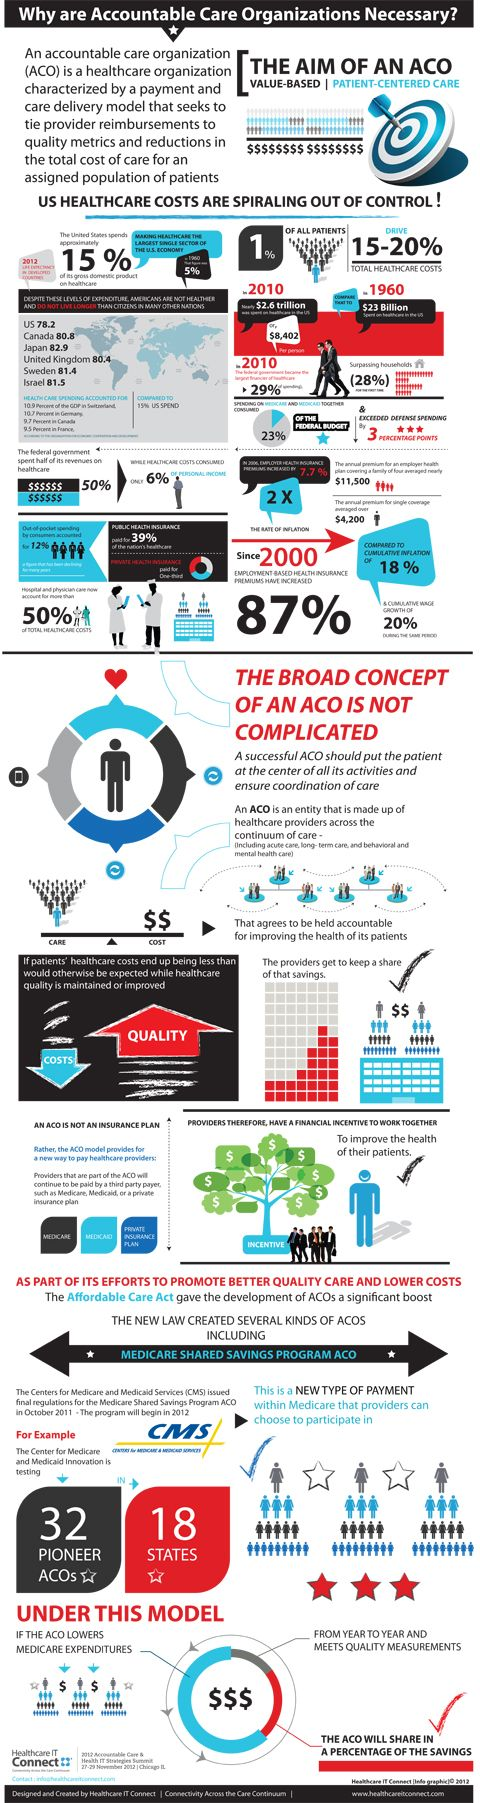 Accountable Care Organizations Infographic -1